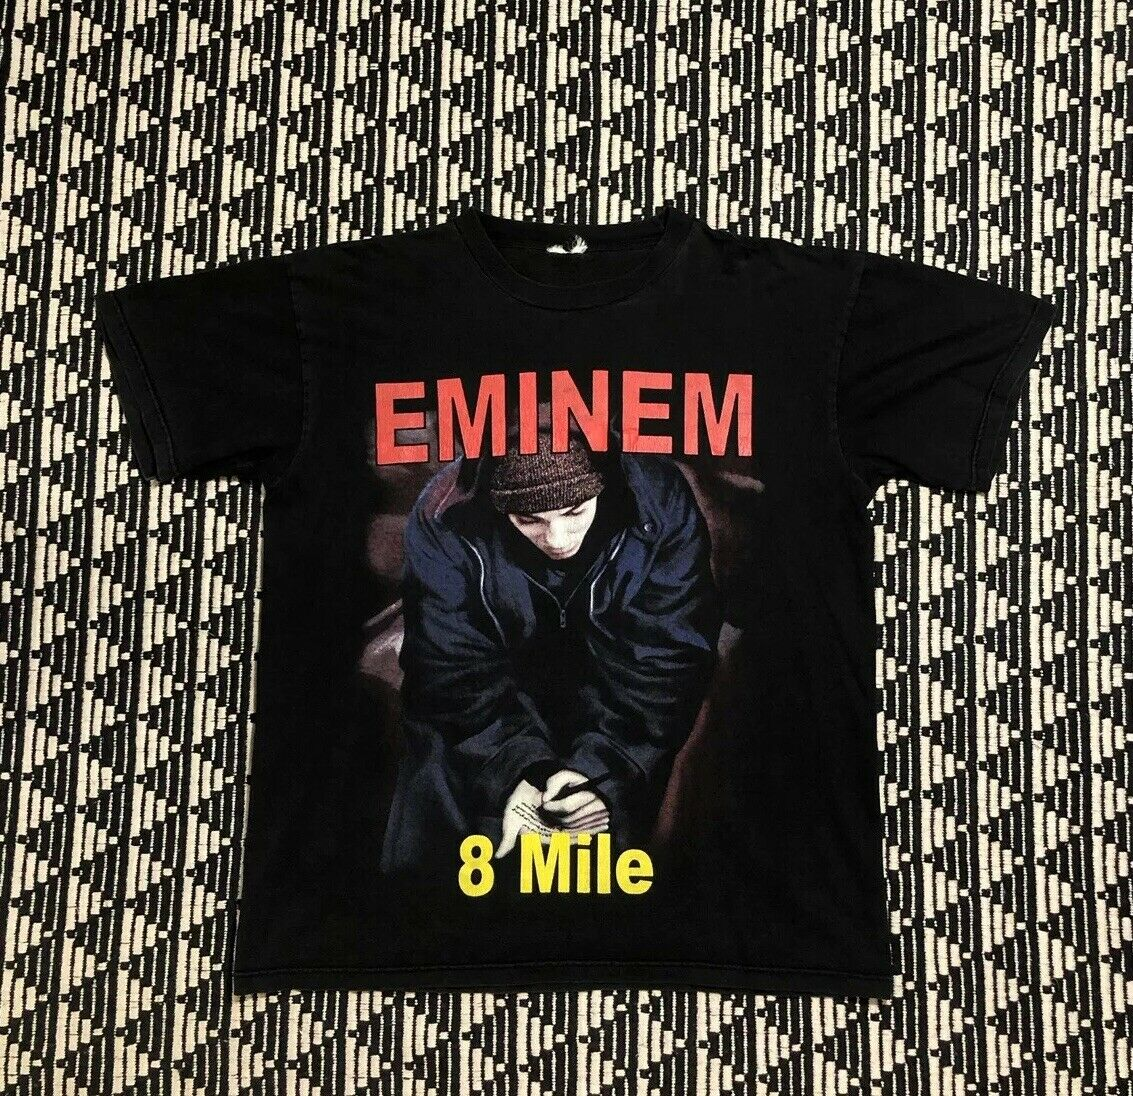 Vintage Eminem 8 Mile Movie Promo Tour Concert Rap Tee T Shirt 90s 2000s Large New Men'S Fashion Short-Sleeve T Shirt Mens image